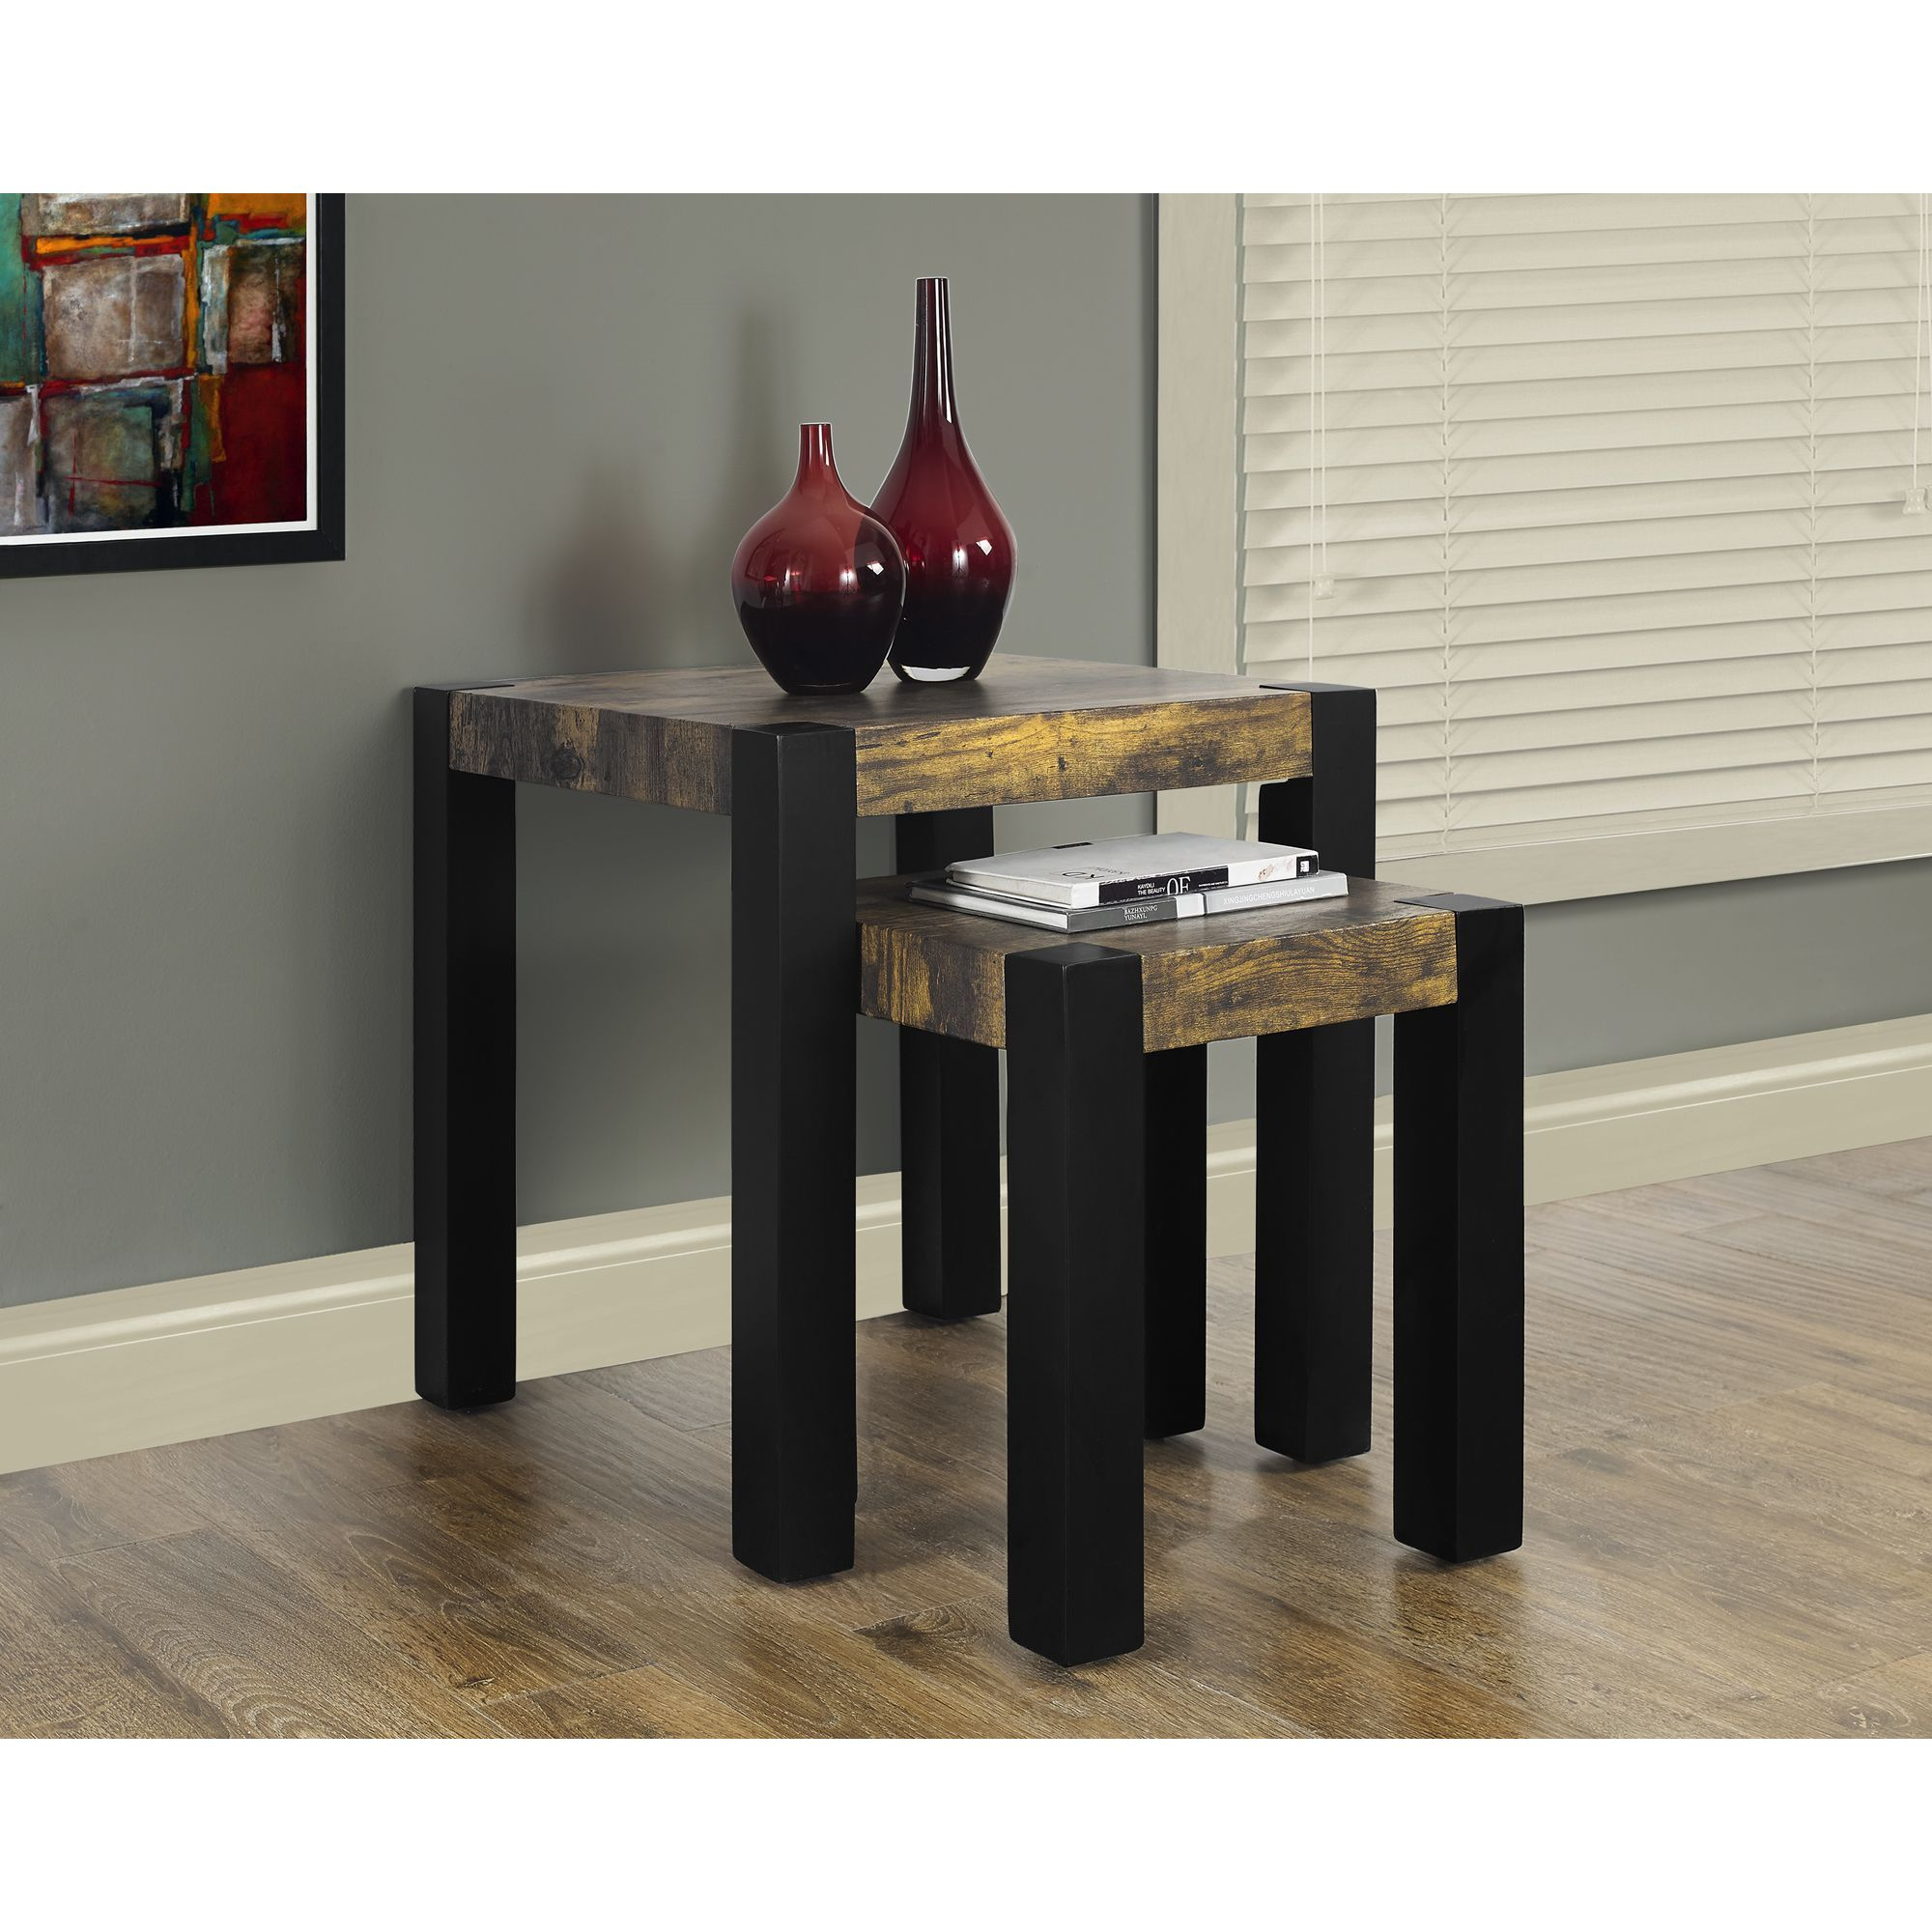 Introduce a rustic feel in any space with this set of two nesting tables. Made to have a distressed and reclaimed wood-look this set of tables adds warmth to your home.